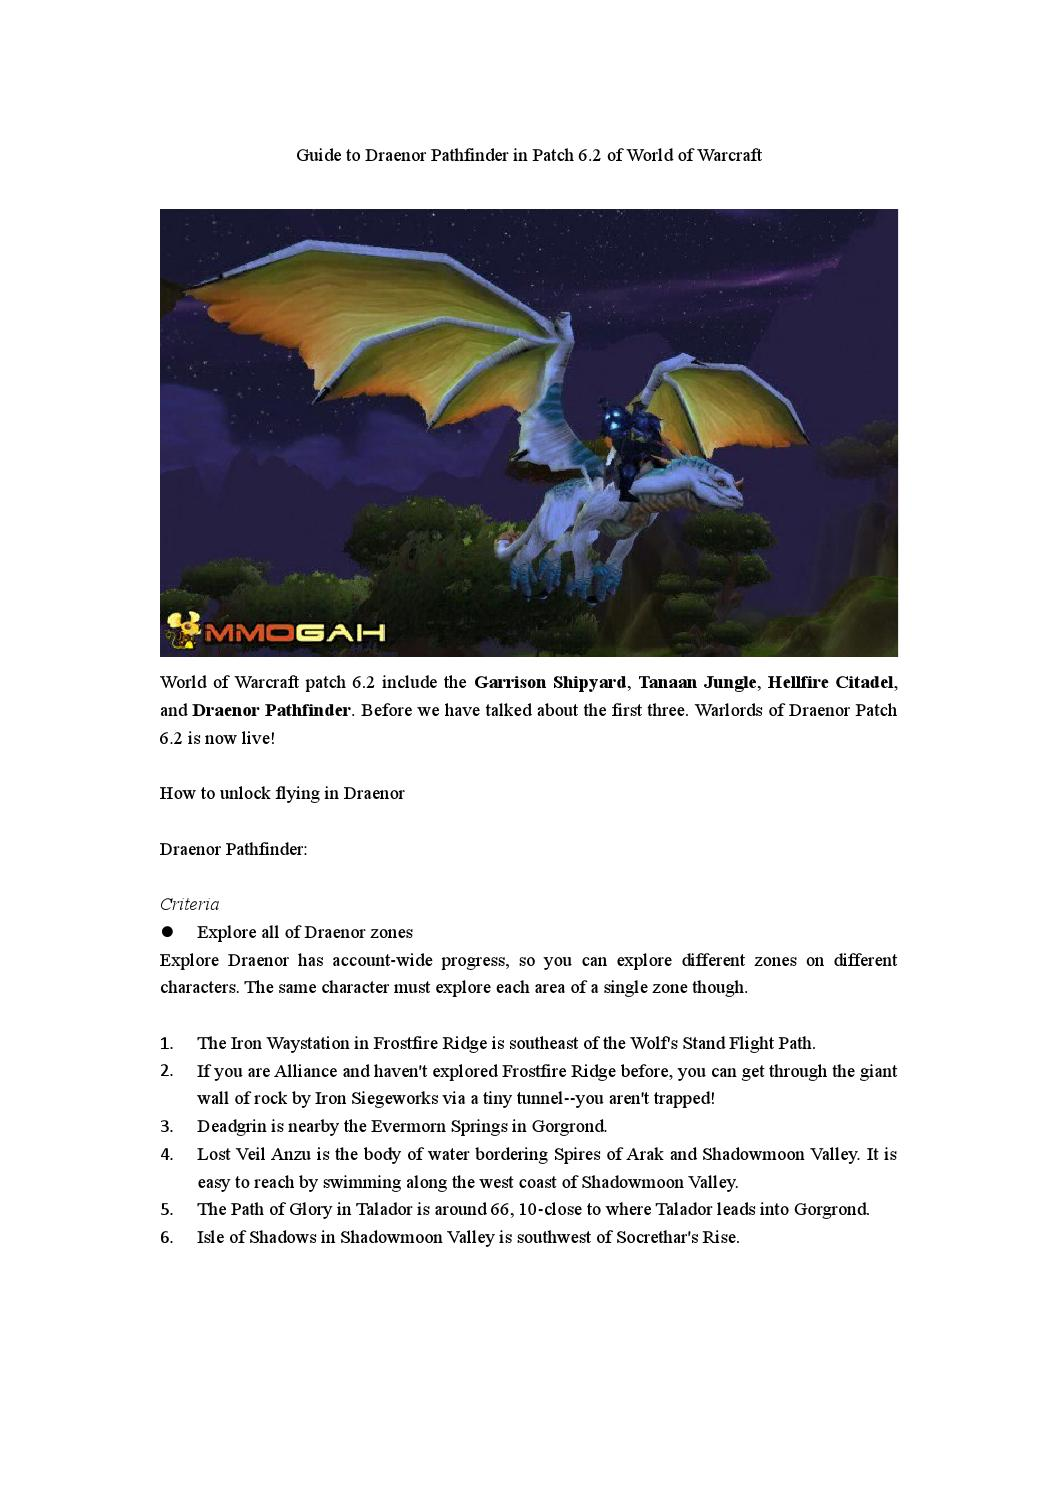 Guide To Draenor Pathfinder In Patch 6 2 Of World Of Warcraft By